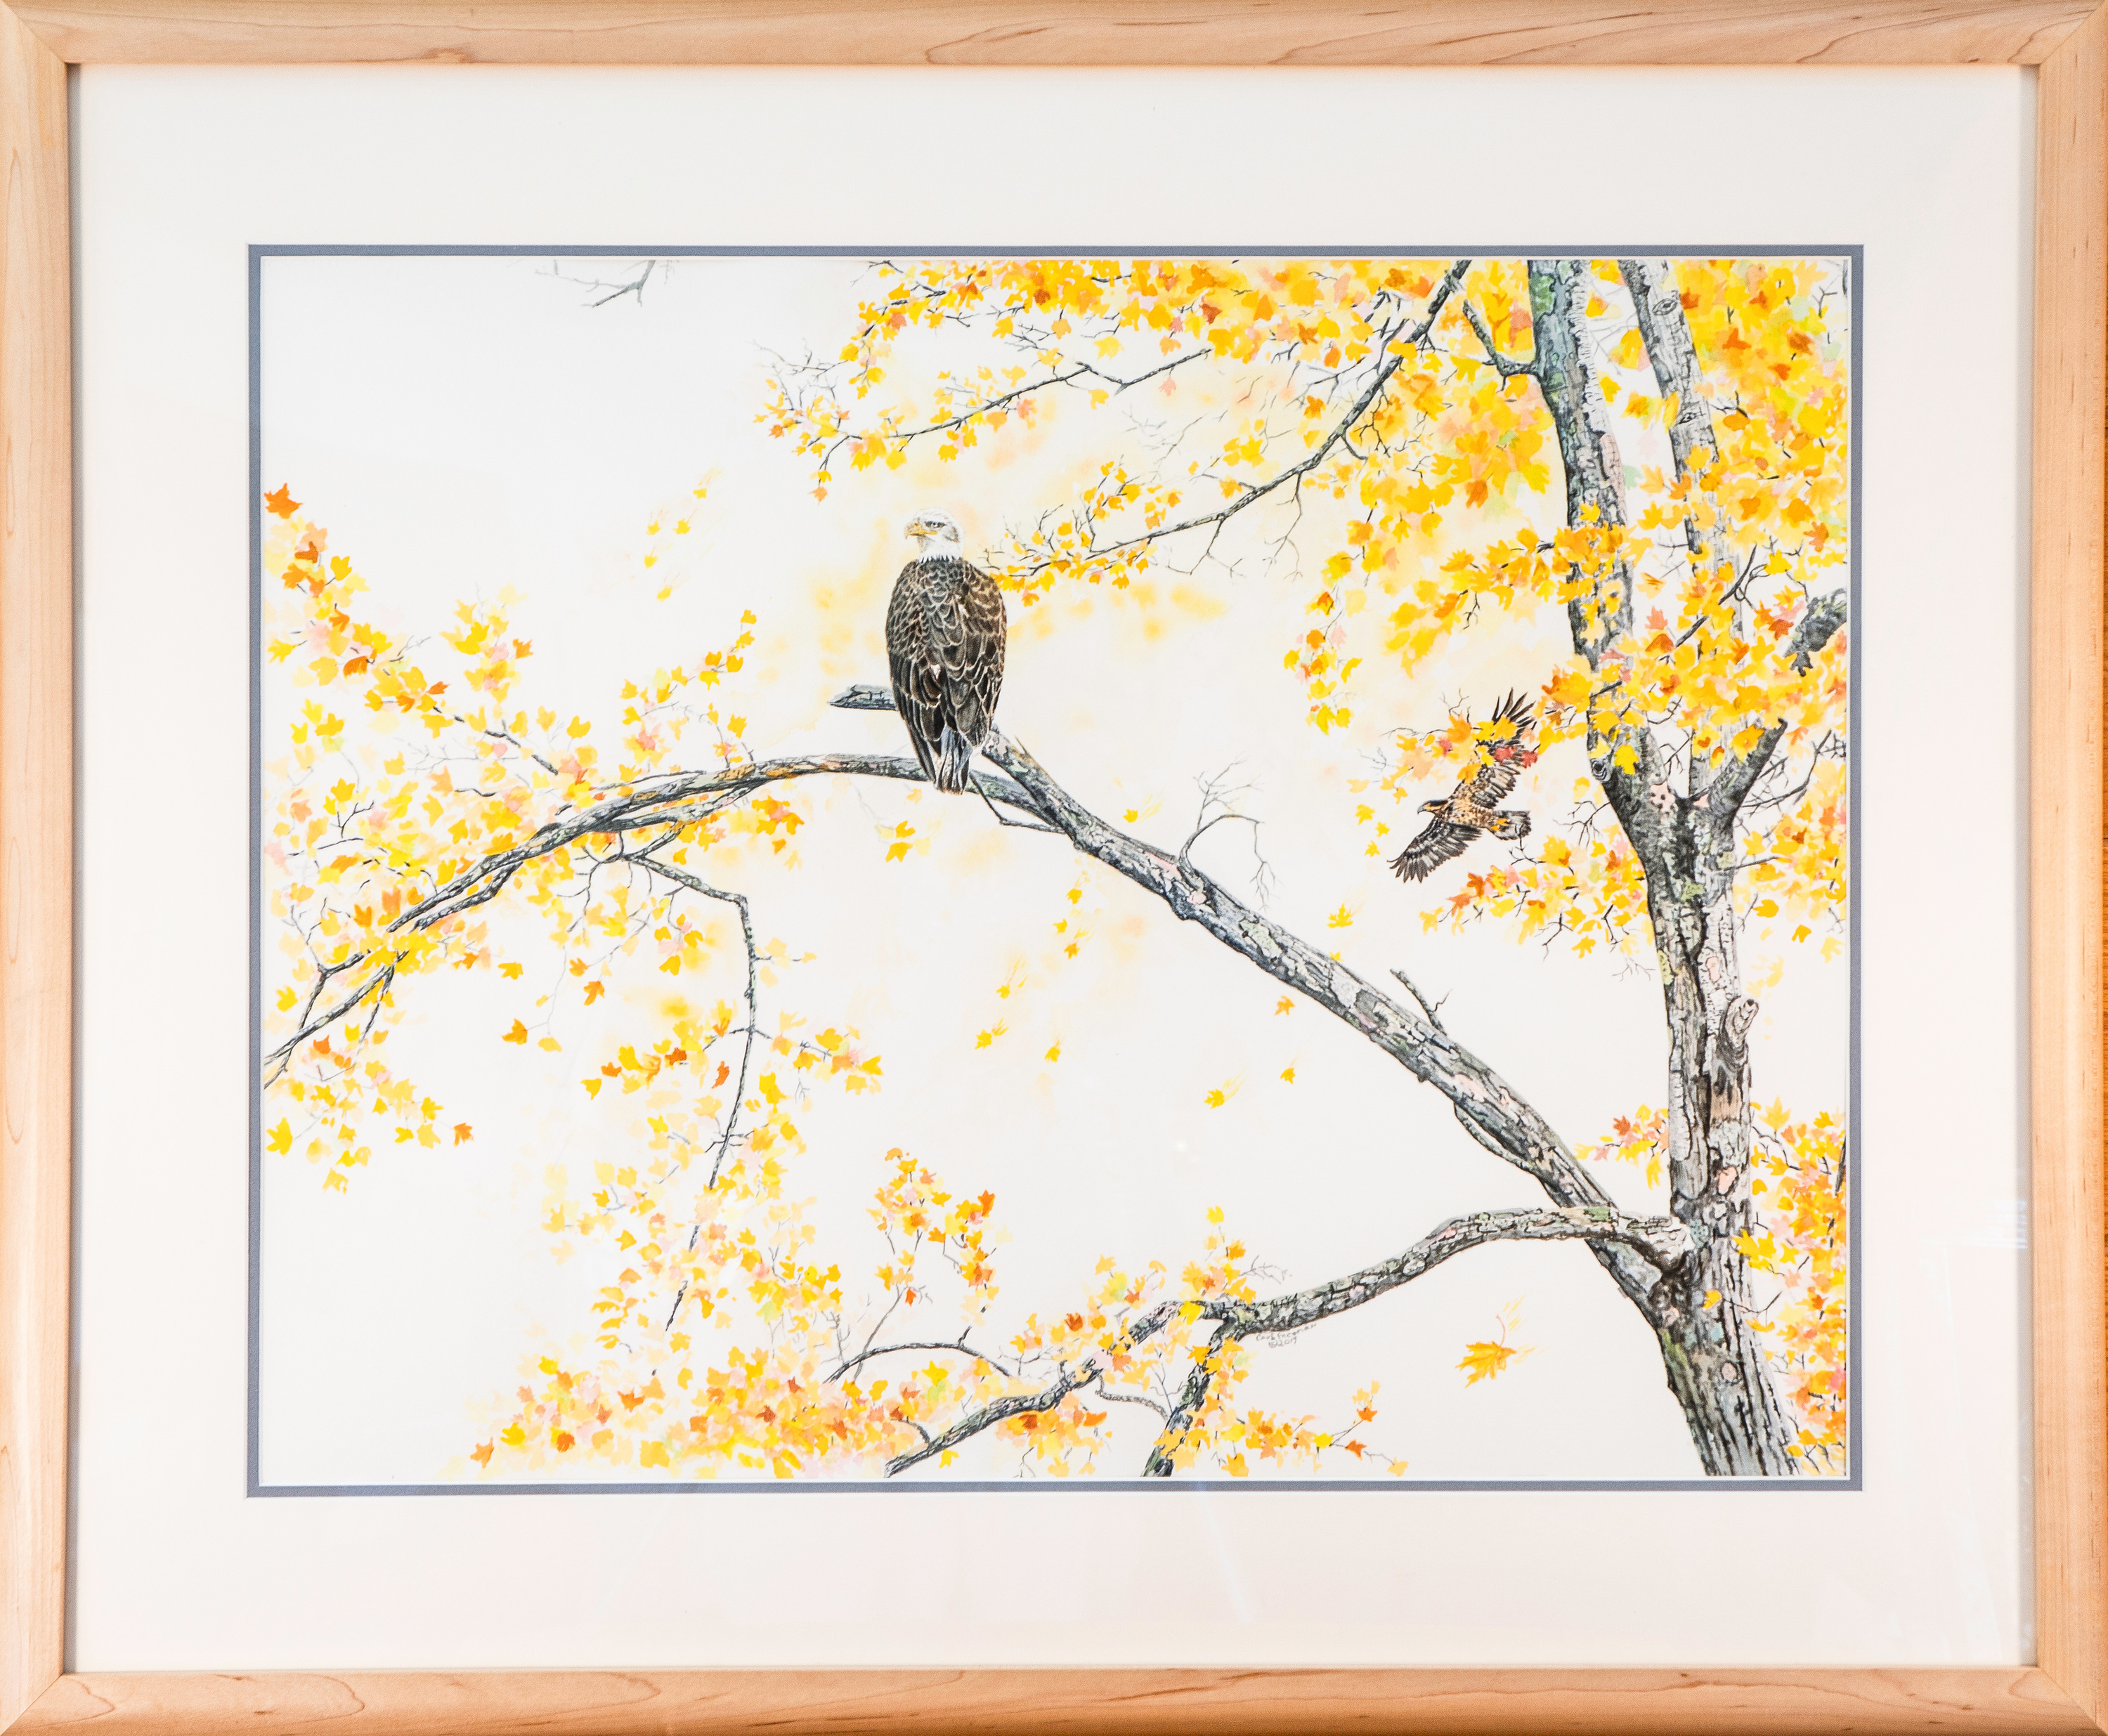 Betsie river eagle framed copy e03wqg